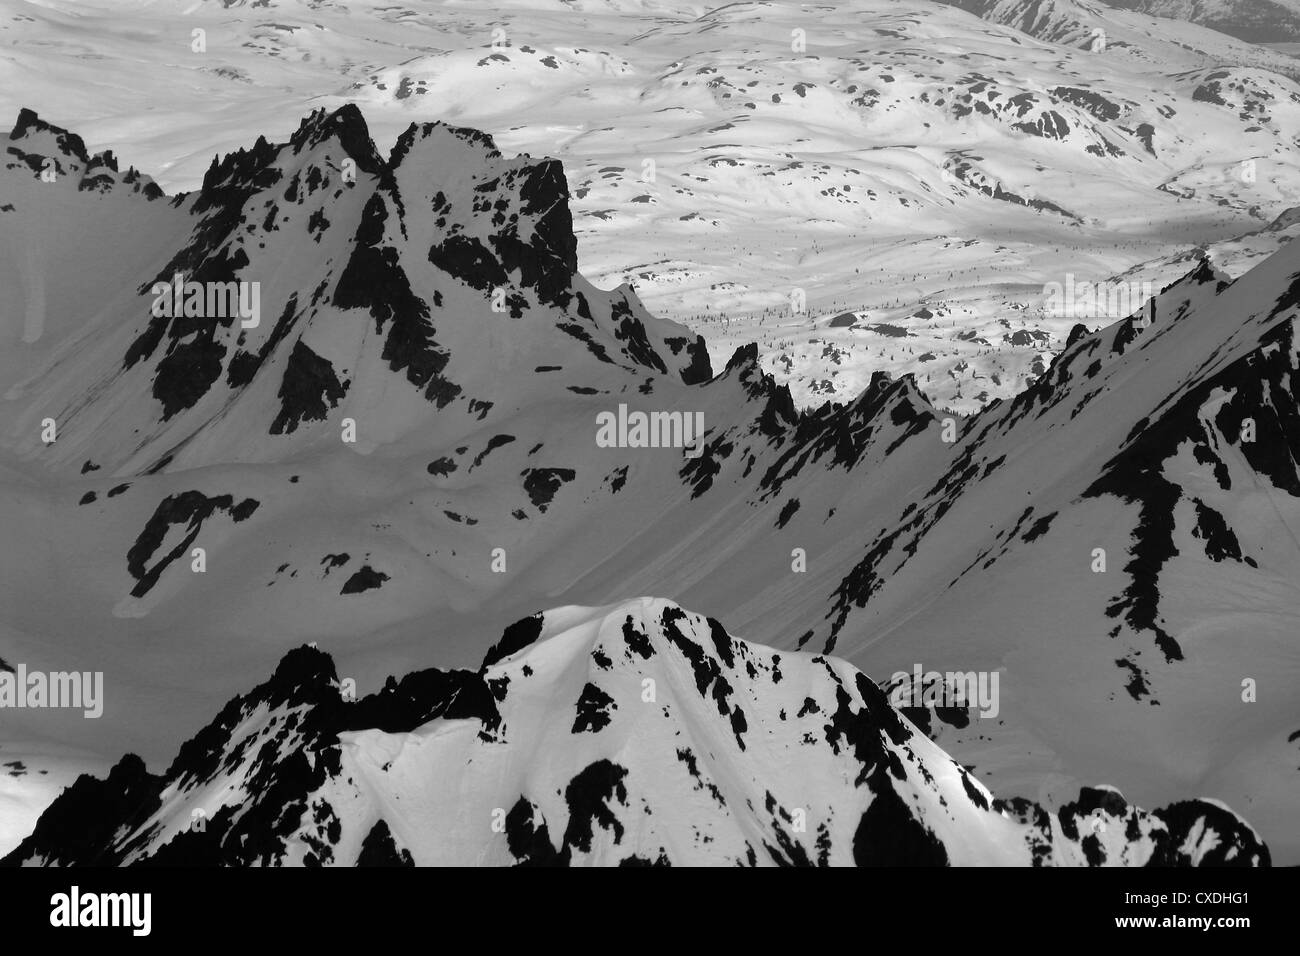 Aerial view of the mighty Alaska Range - Stock Image